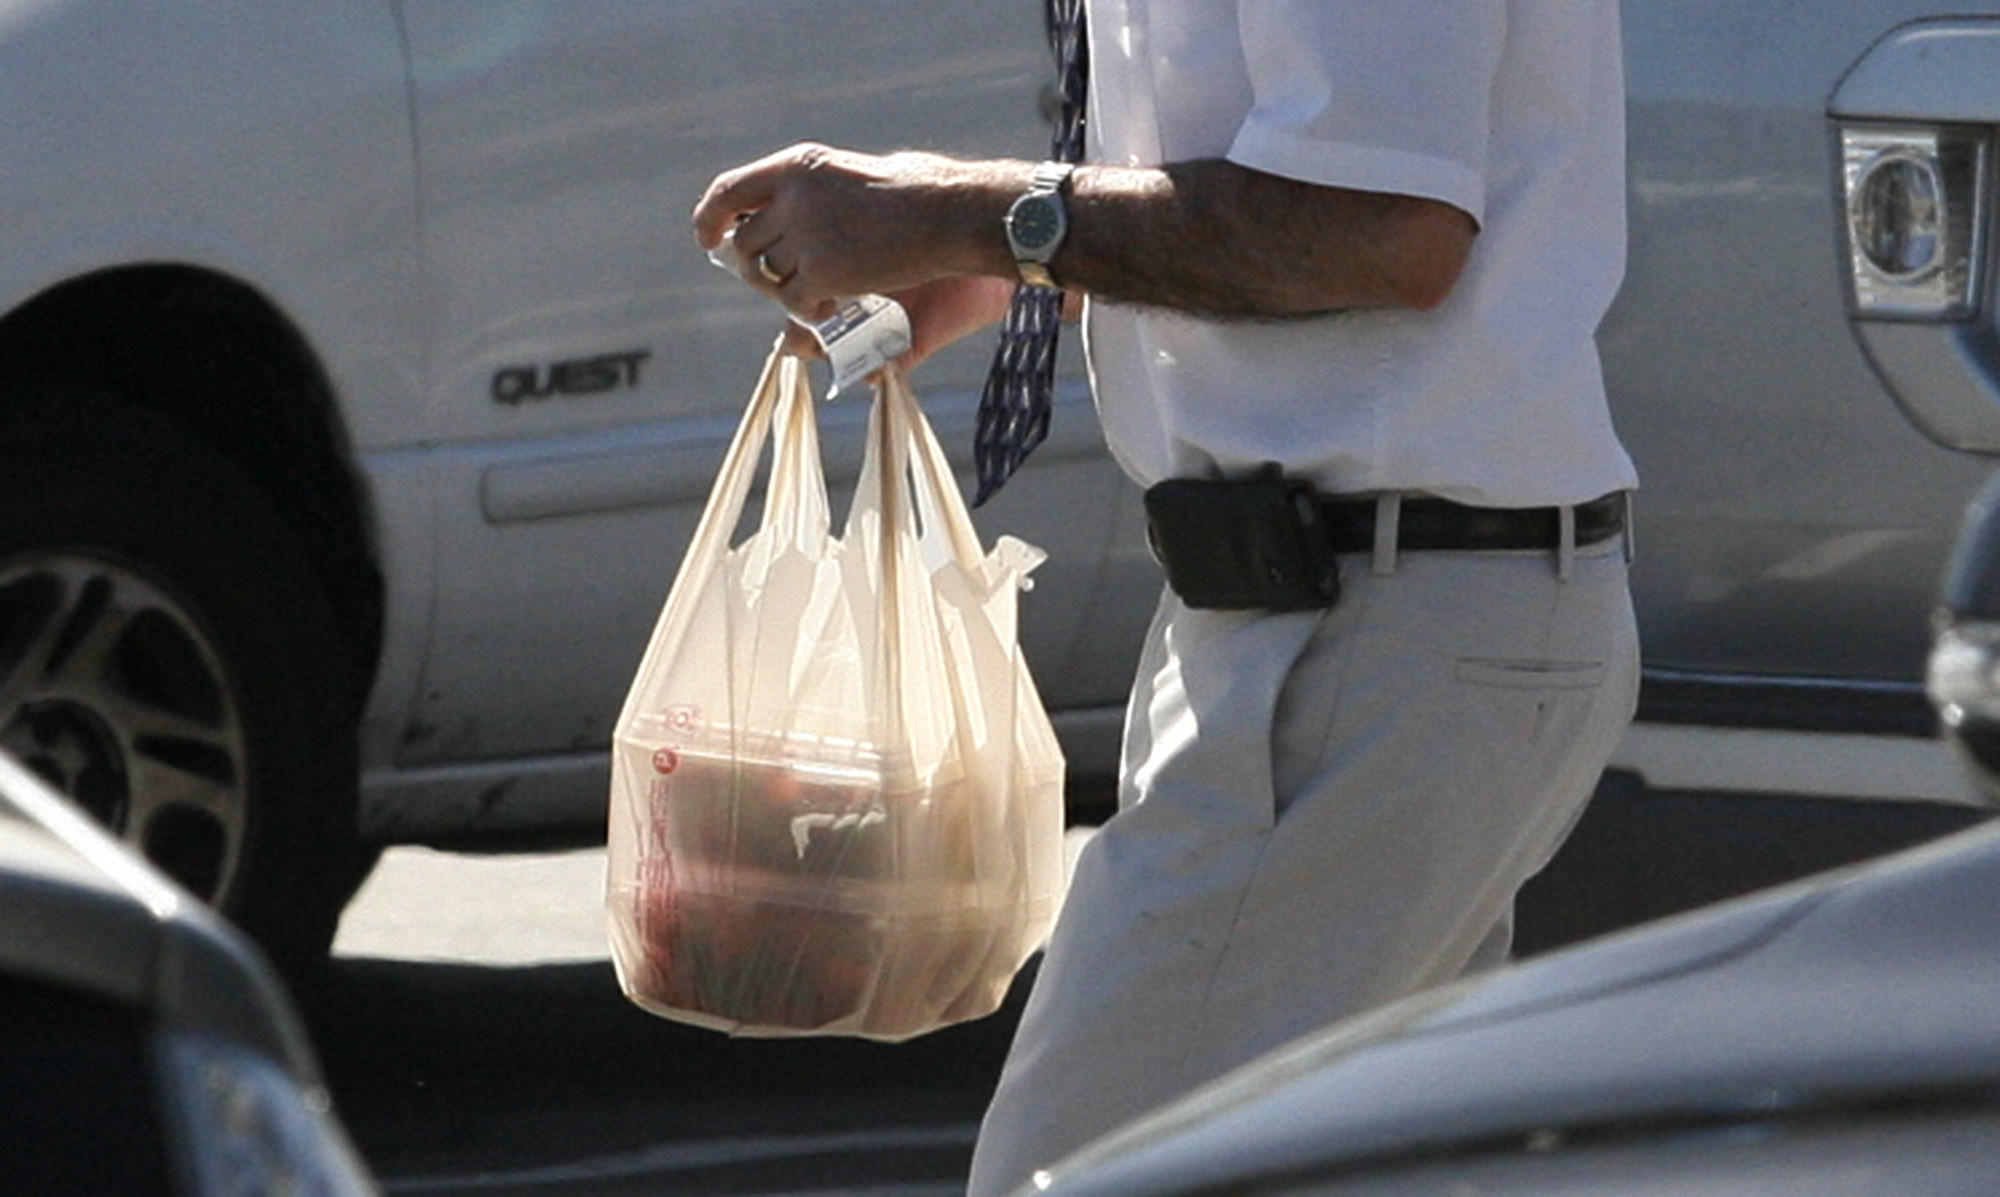 Plastic bags are not banned in La Cañada Flintridge, though the local Ralphs store, pictured on Tuesday, April 16, 2013, is no longer offering them to customers.